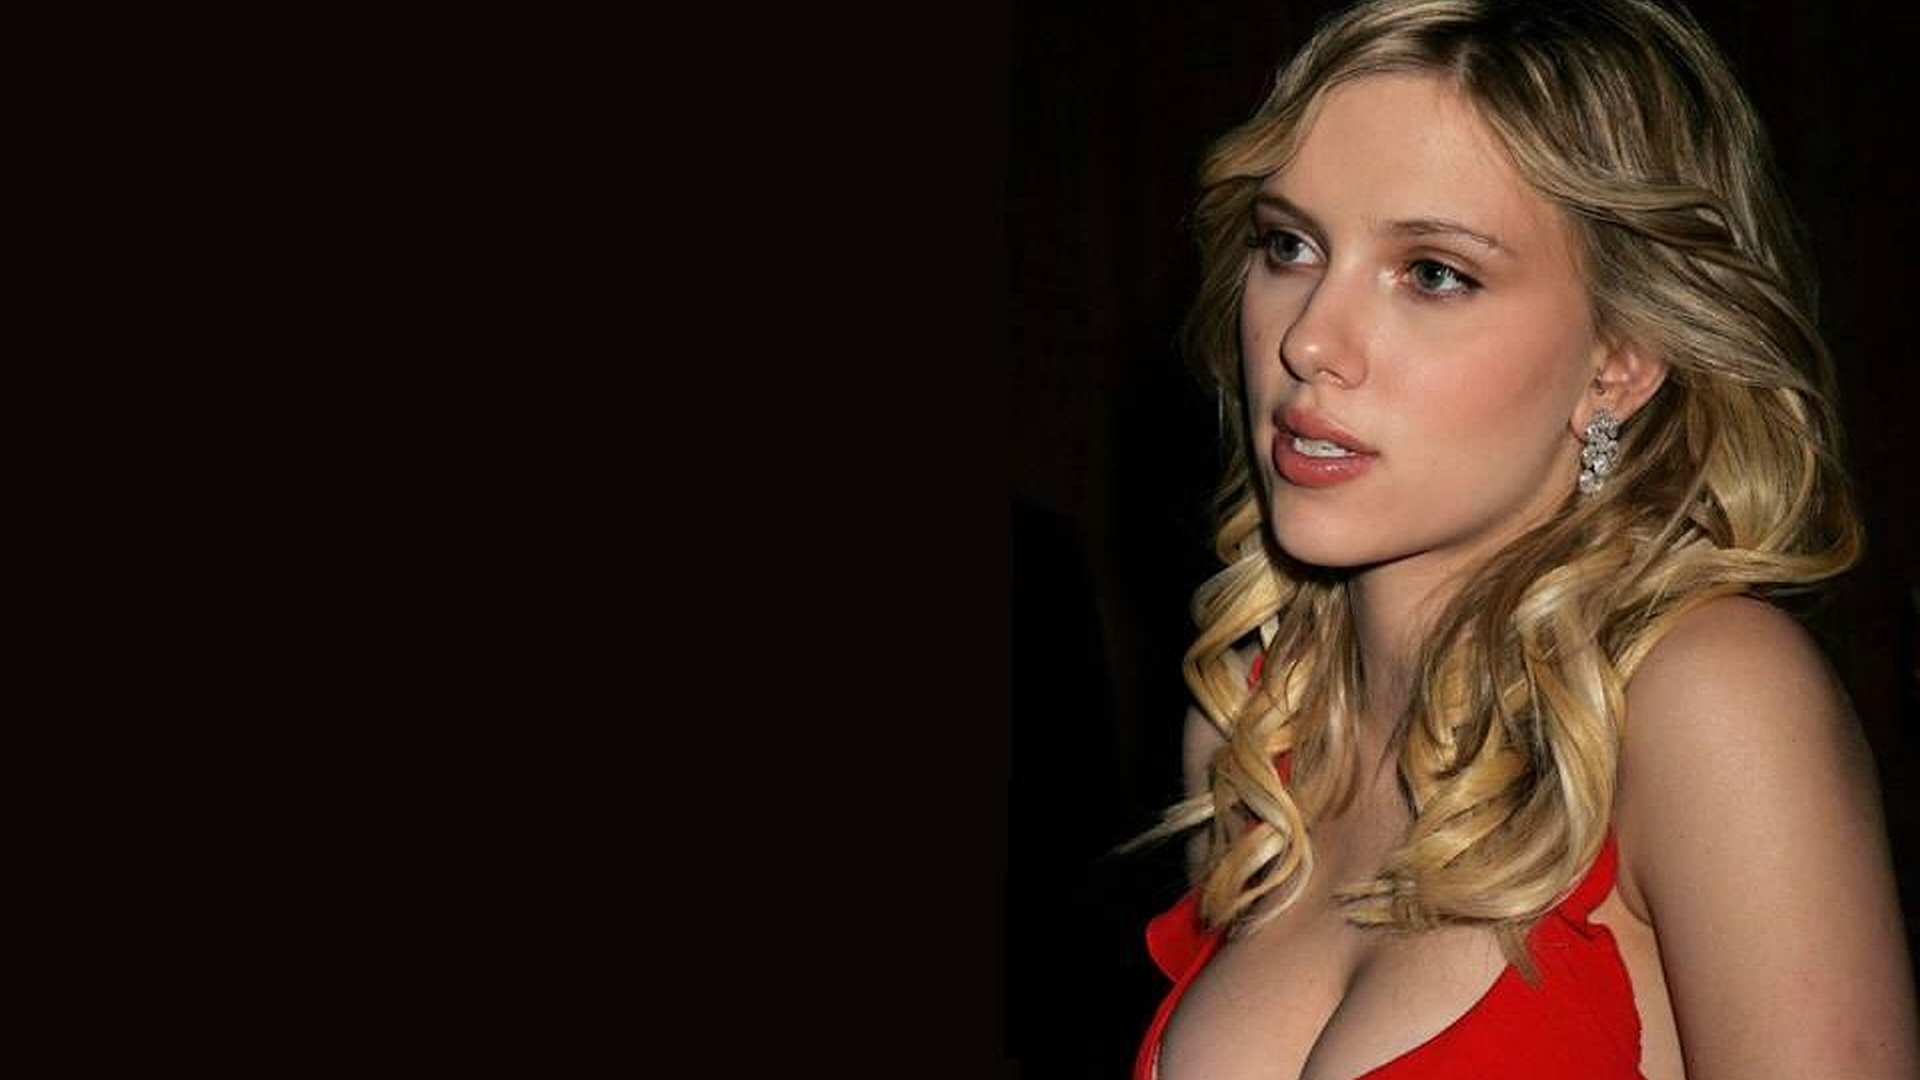 Scarlett Johansson Wallpapers ID161550